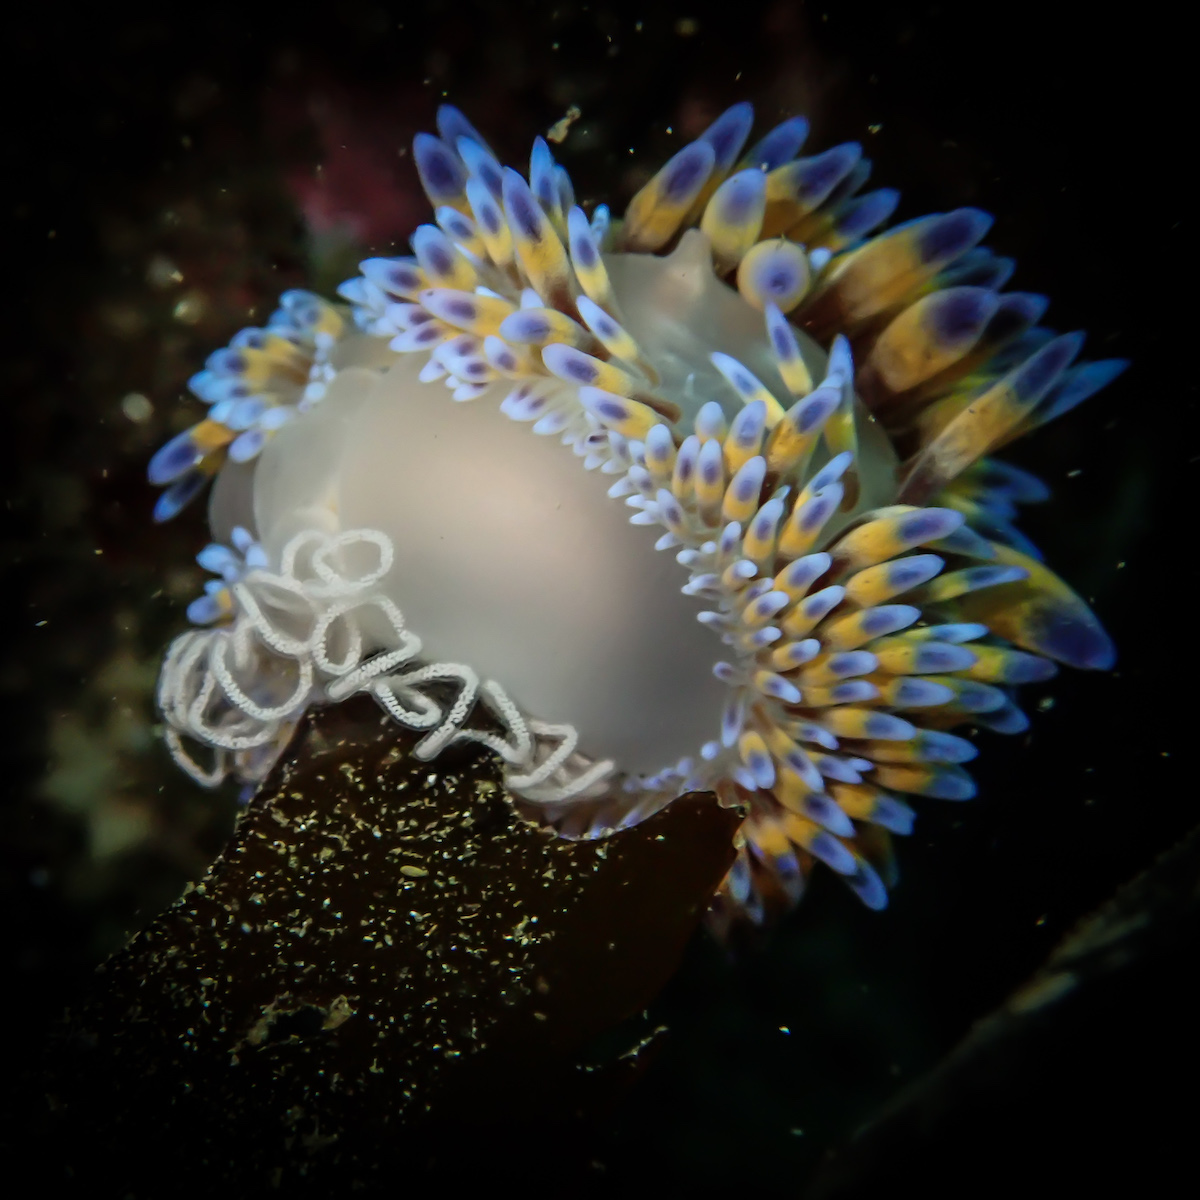 Gasflame nudibranch laying eggs  - Photo credit Keri Muller www.simpleintrigue.com